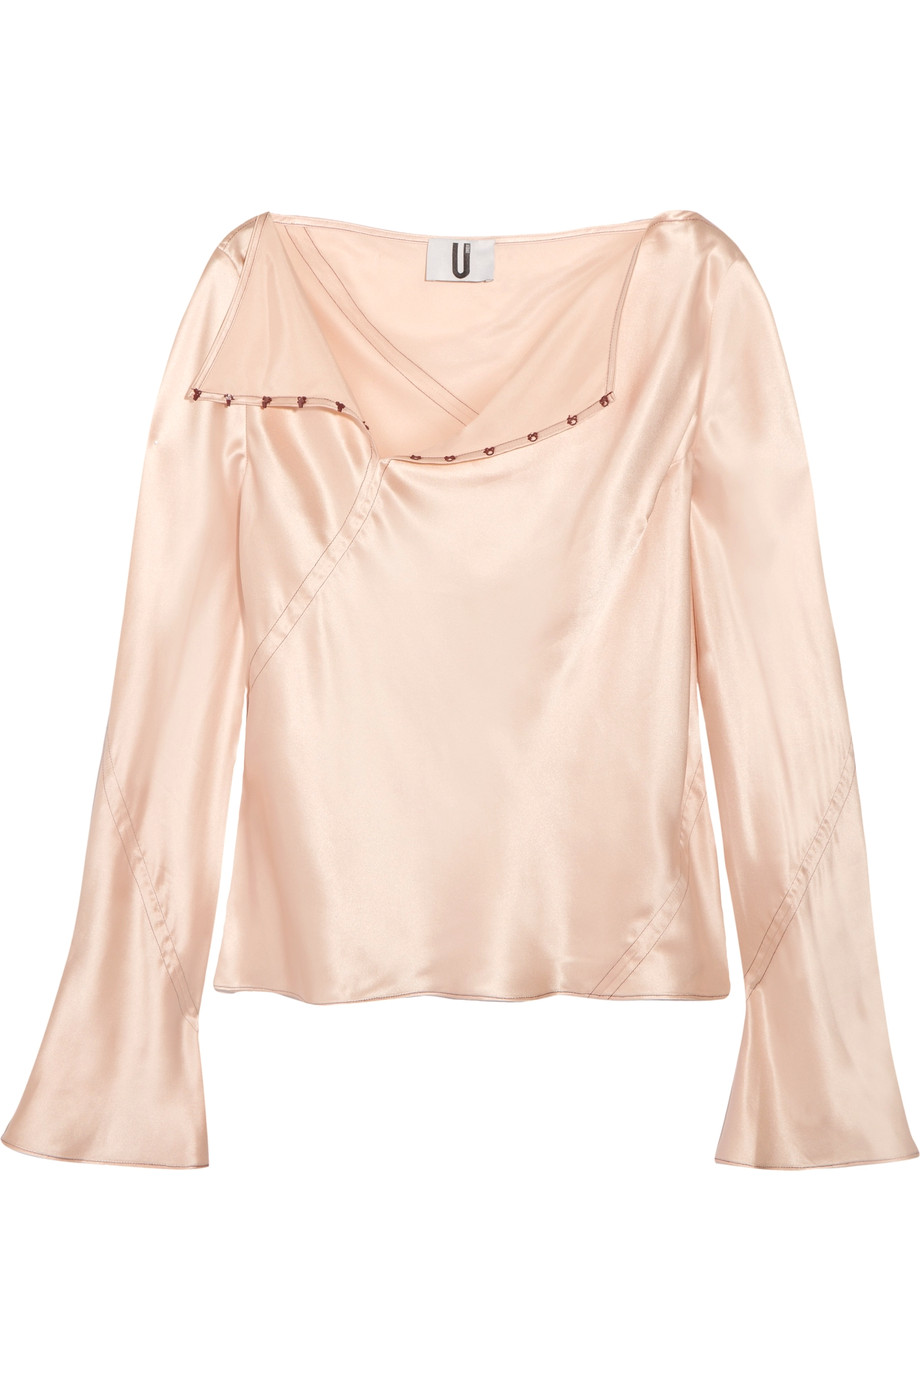 Satin blouse Topshop Unique buy Satin blouse Topshop Unique internet shop